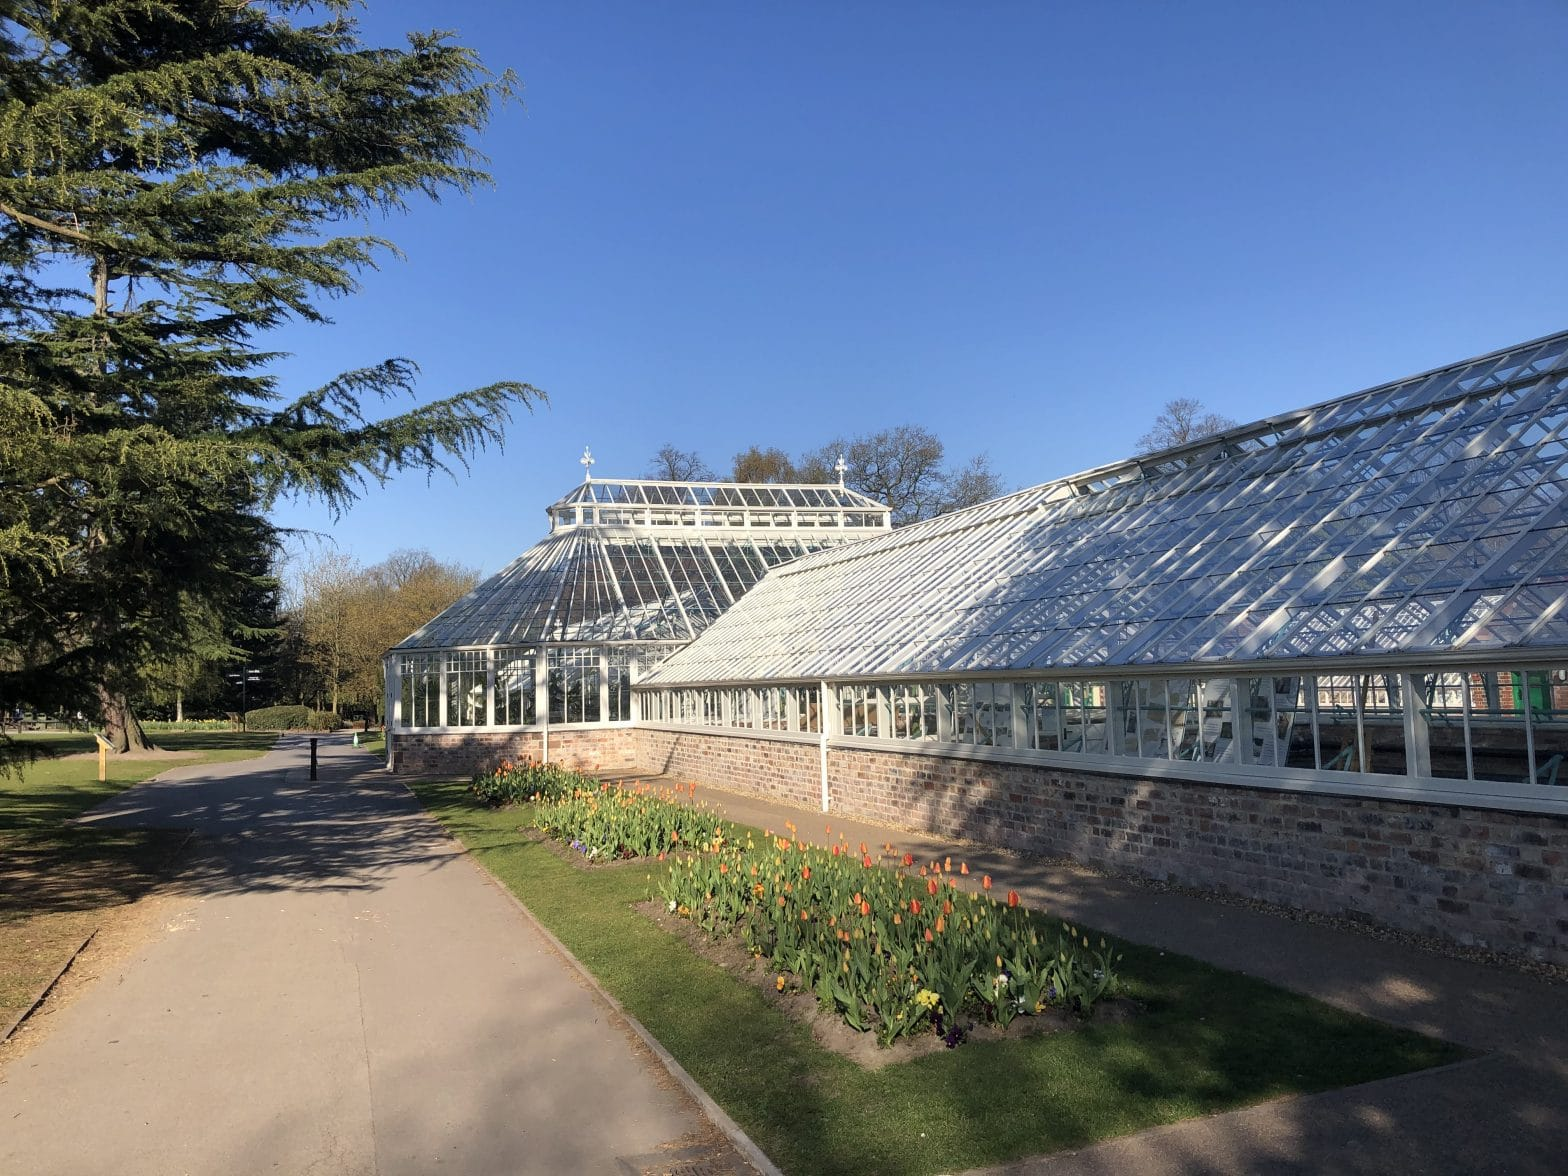 Walton Hall and Gardens in the sunshine - the glasshouses